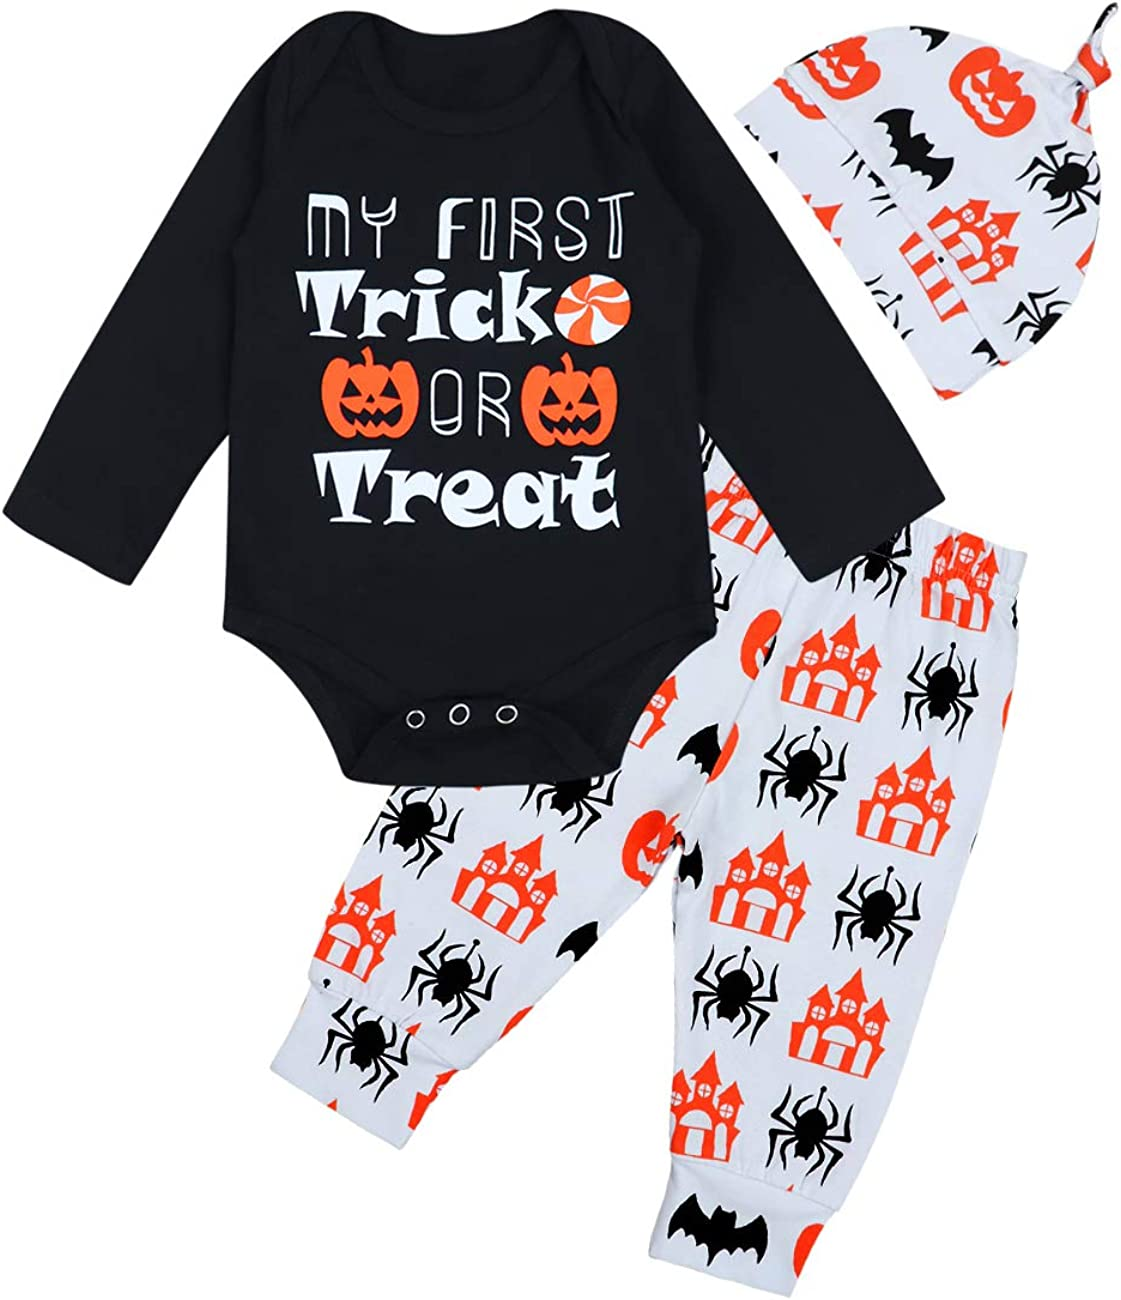 Thanksgiving Outfit Newborn Baby Boy Girl My First Thanksgiving Romper Turkey Pant Hat Headband 4pcs Clothes Set